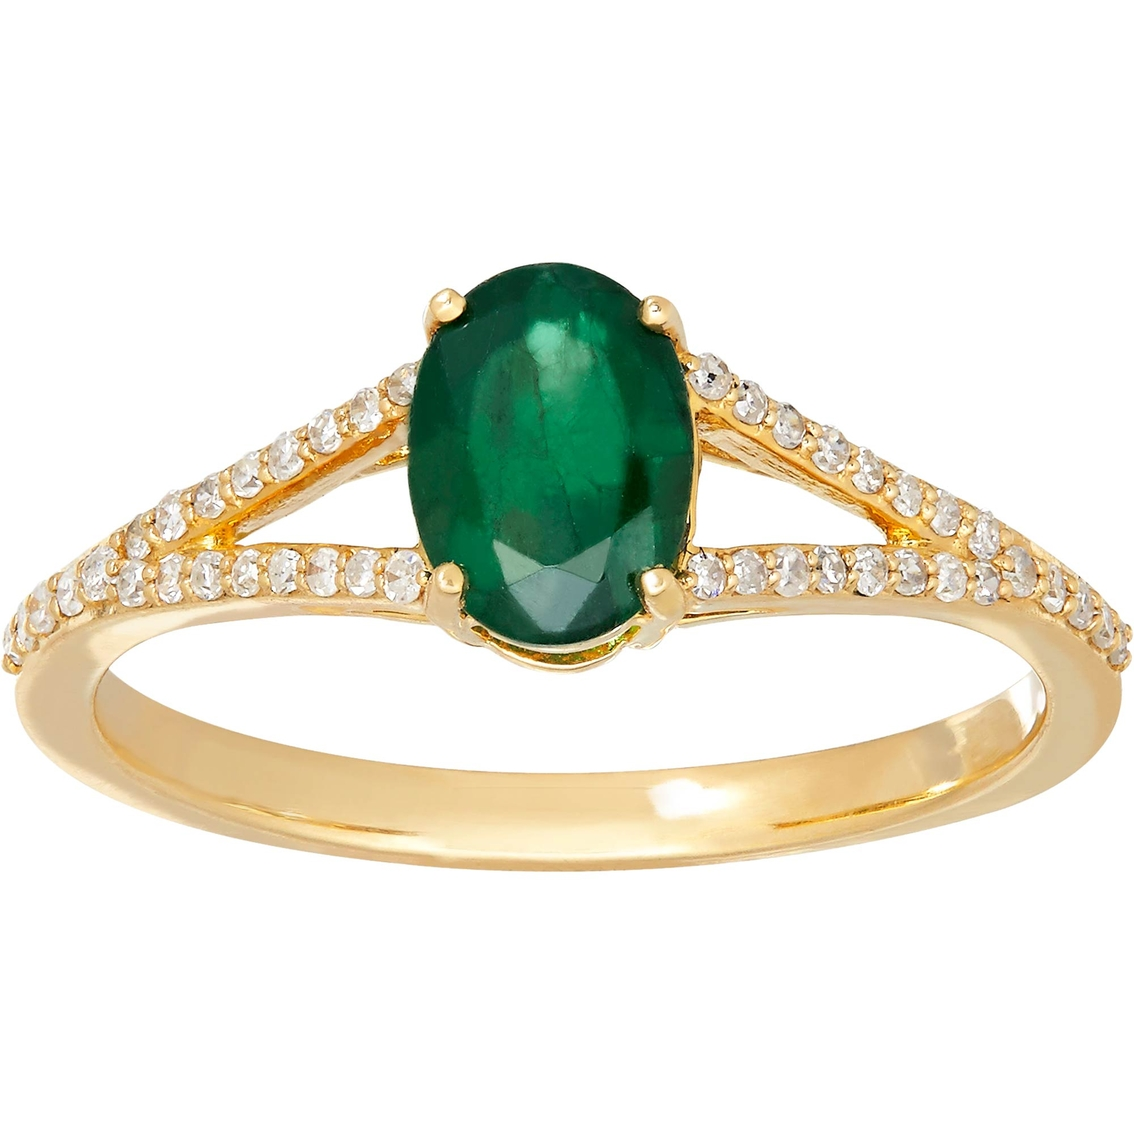 10k Yellow Gold Oval Emerald And Diamond Ring